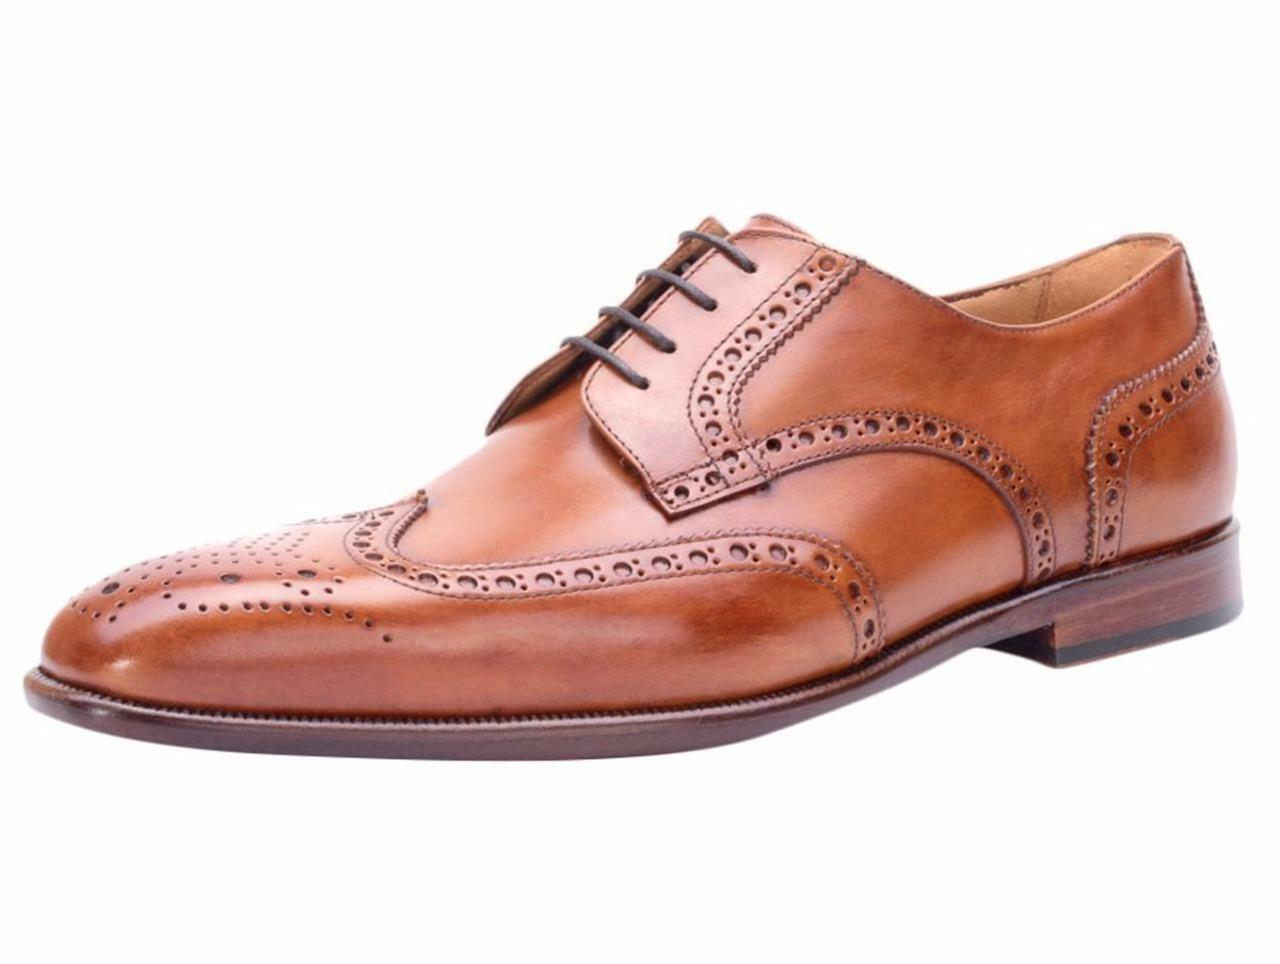 New in Box- Curatore Abbott Siena Wingtip Derby Leather Oxford Size 12 (45)